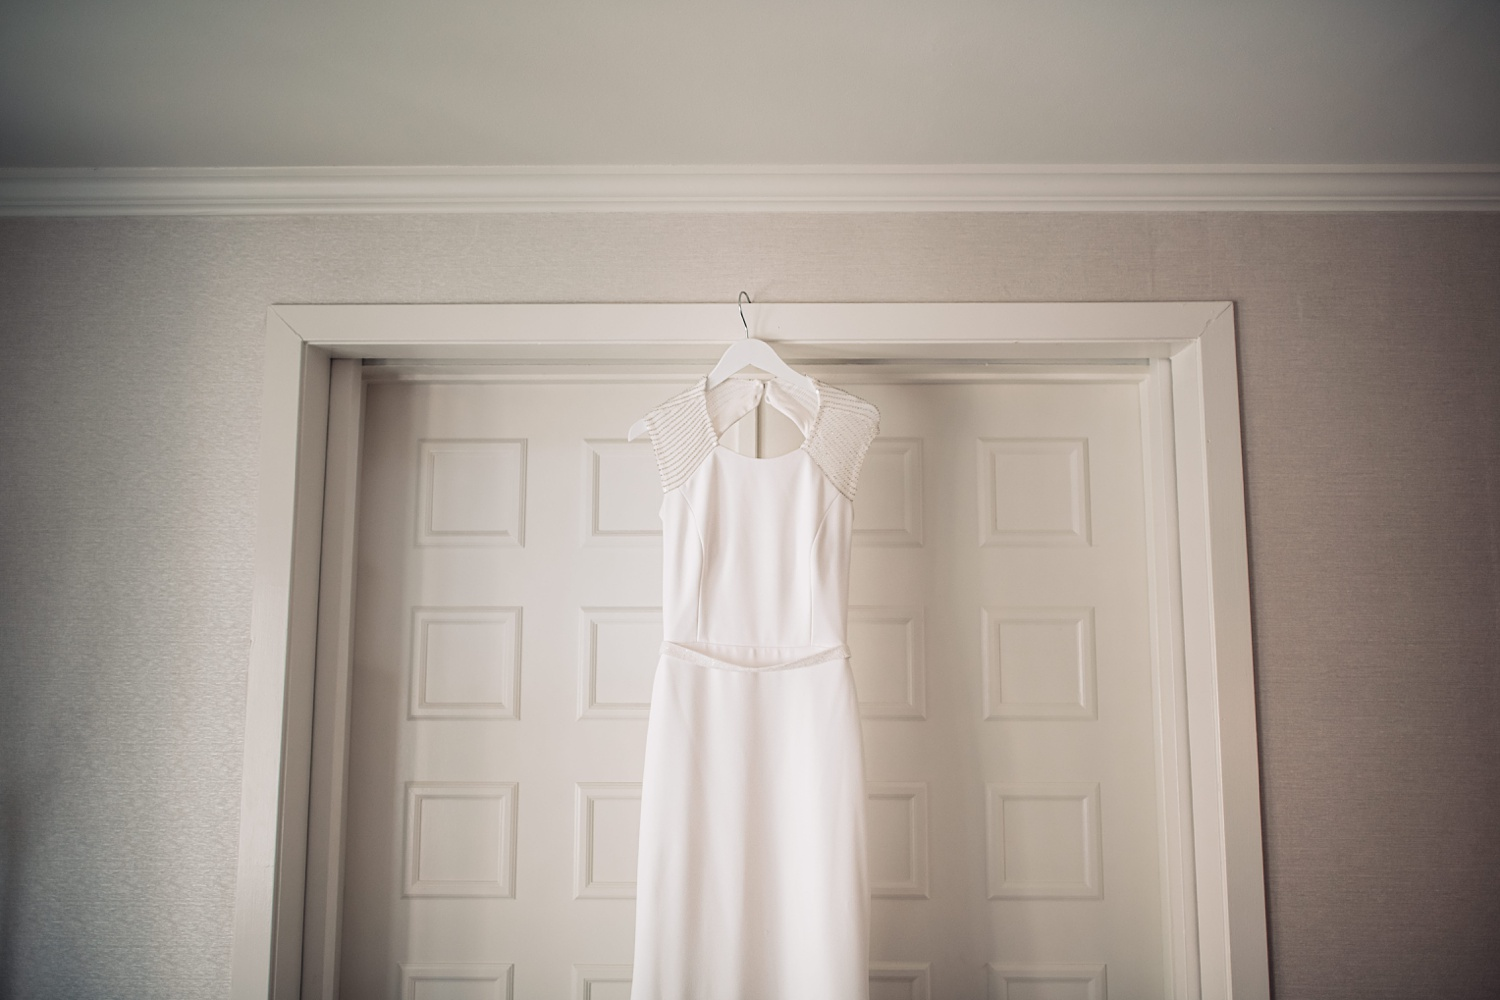 Artifact Events Fall Chicago Wedding - The Adamkovi hanging dress